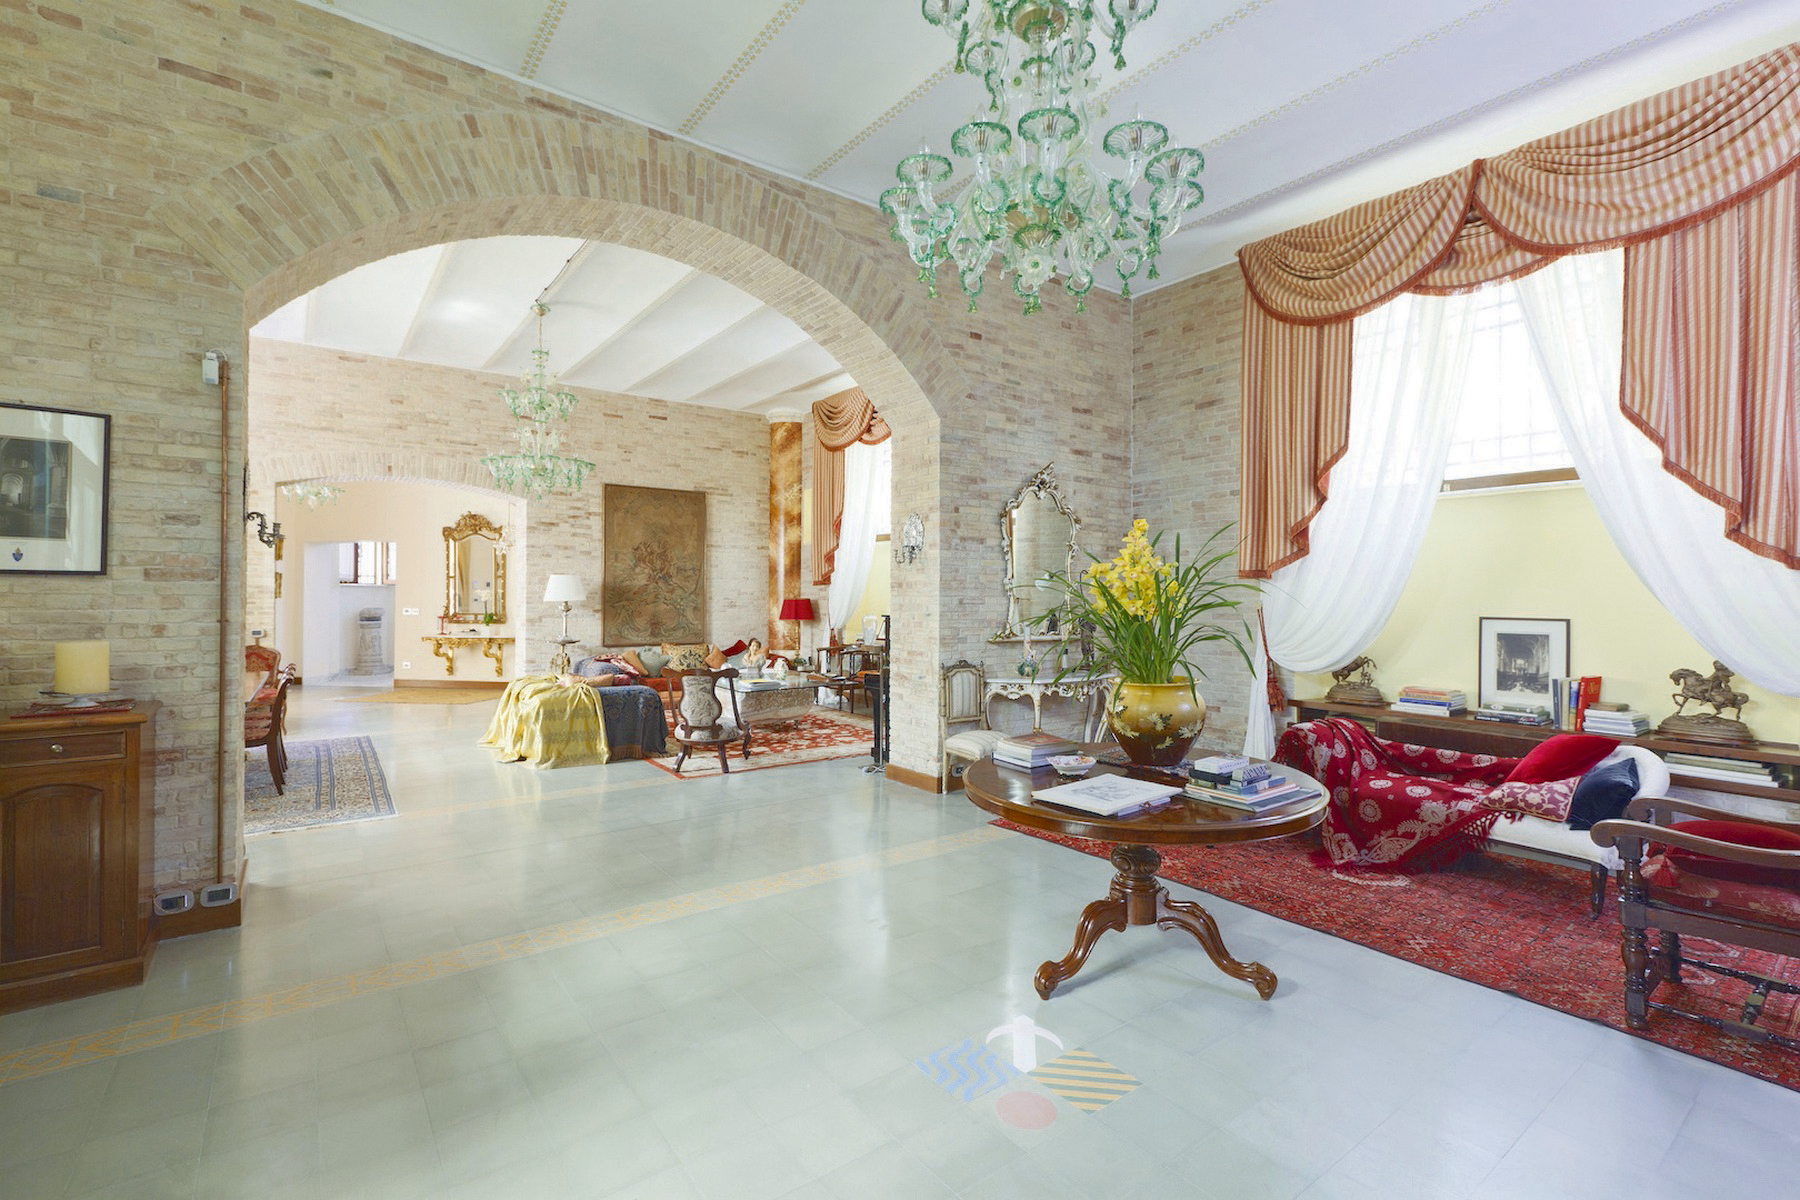 Additional photo for property listing at Villa Cardinali Contrada Schito Treia, Macerata 62010 Italie